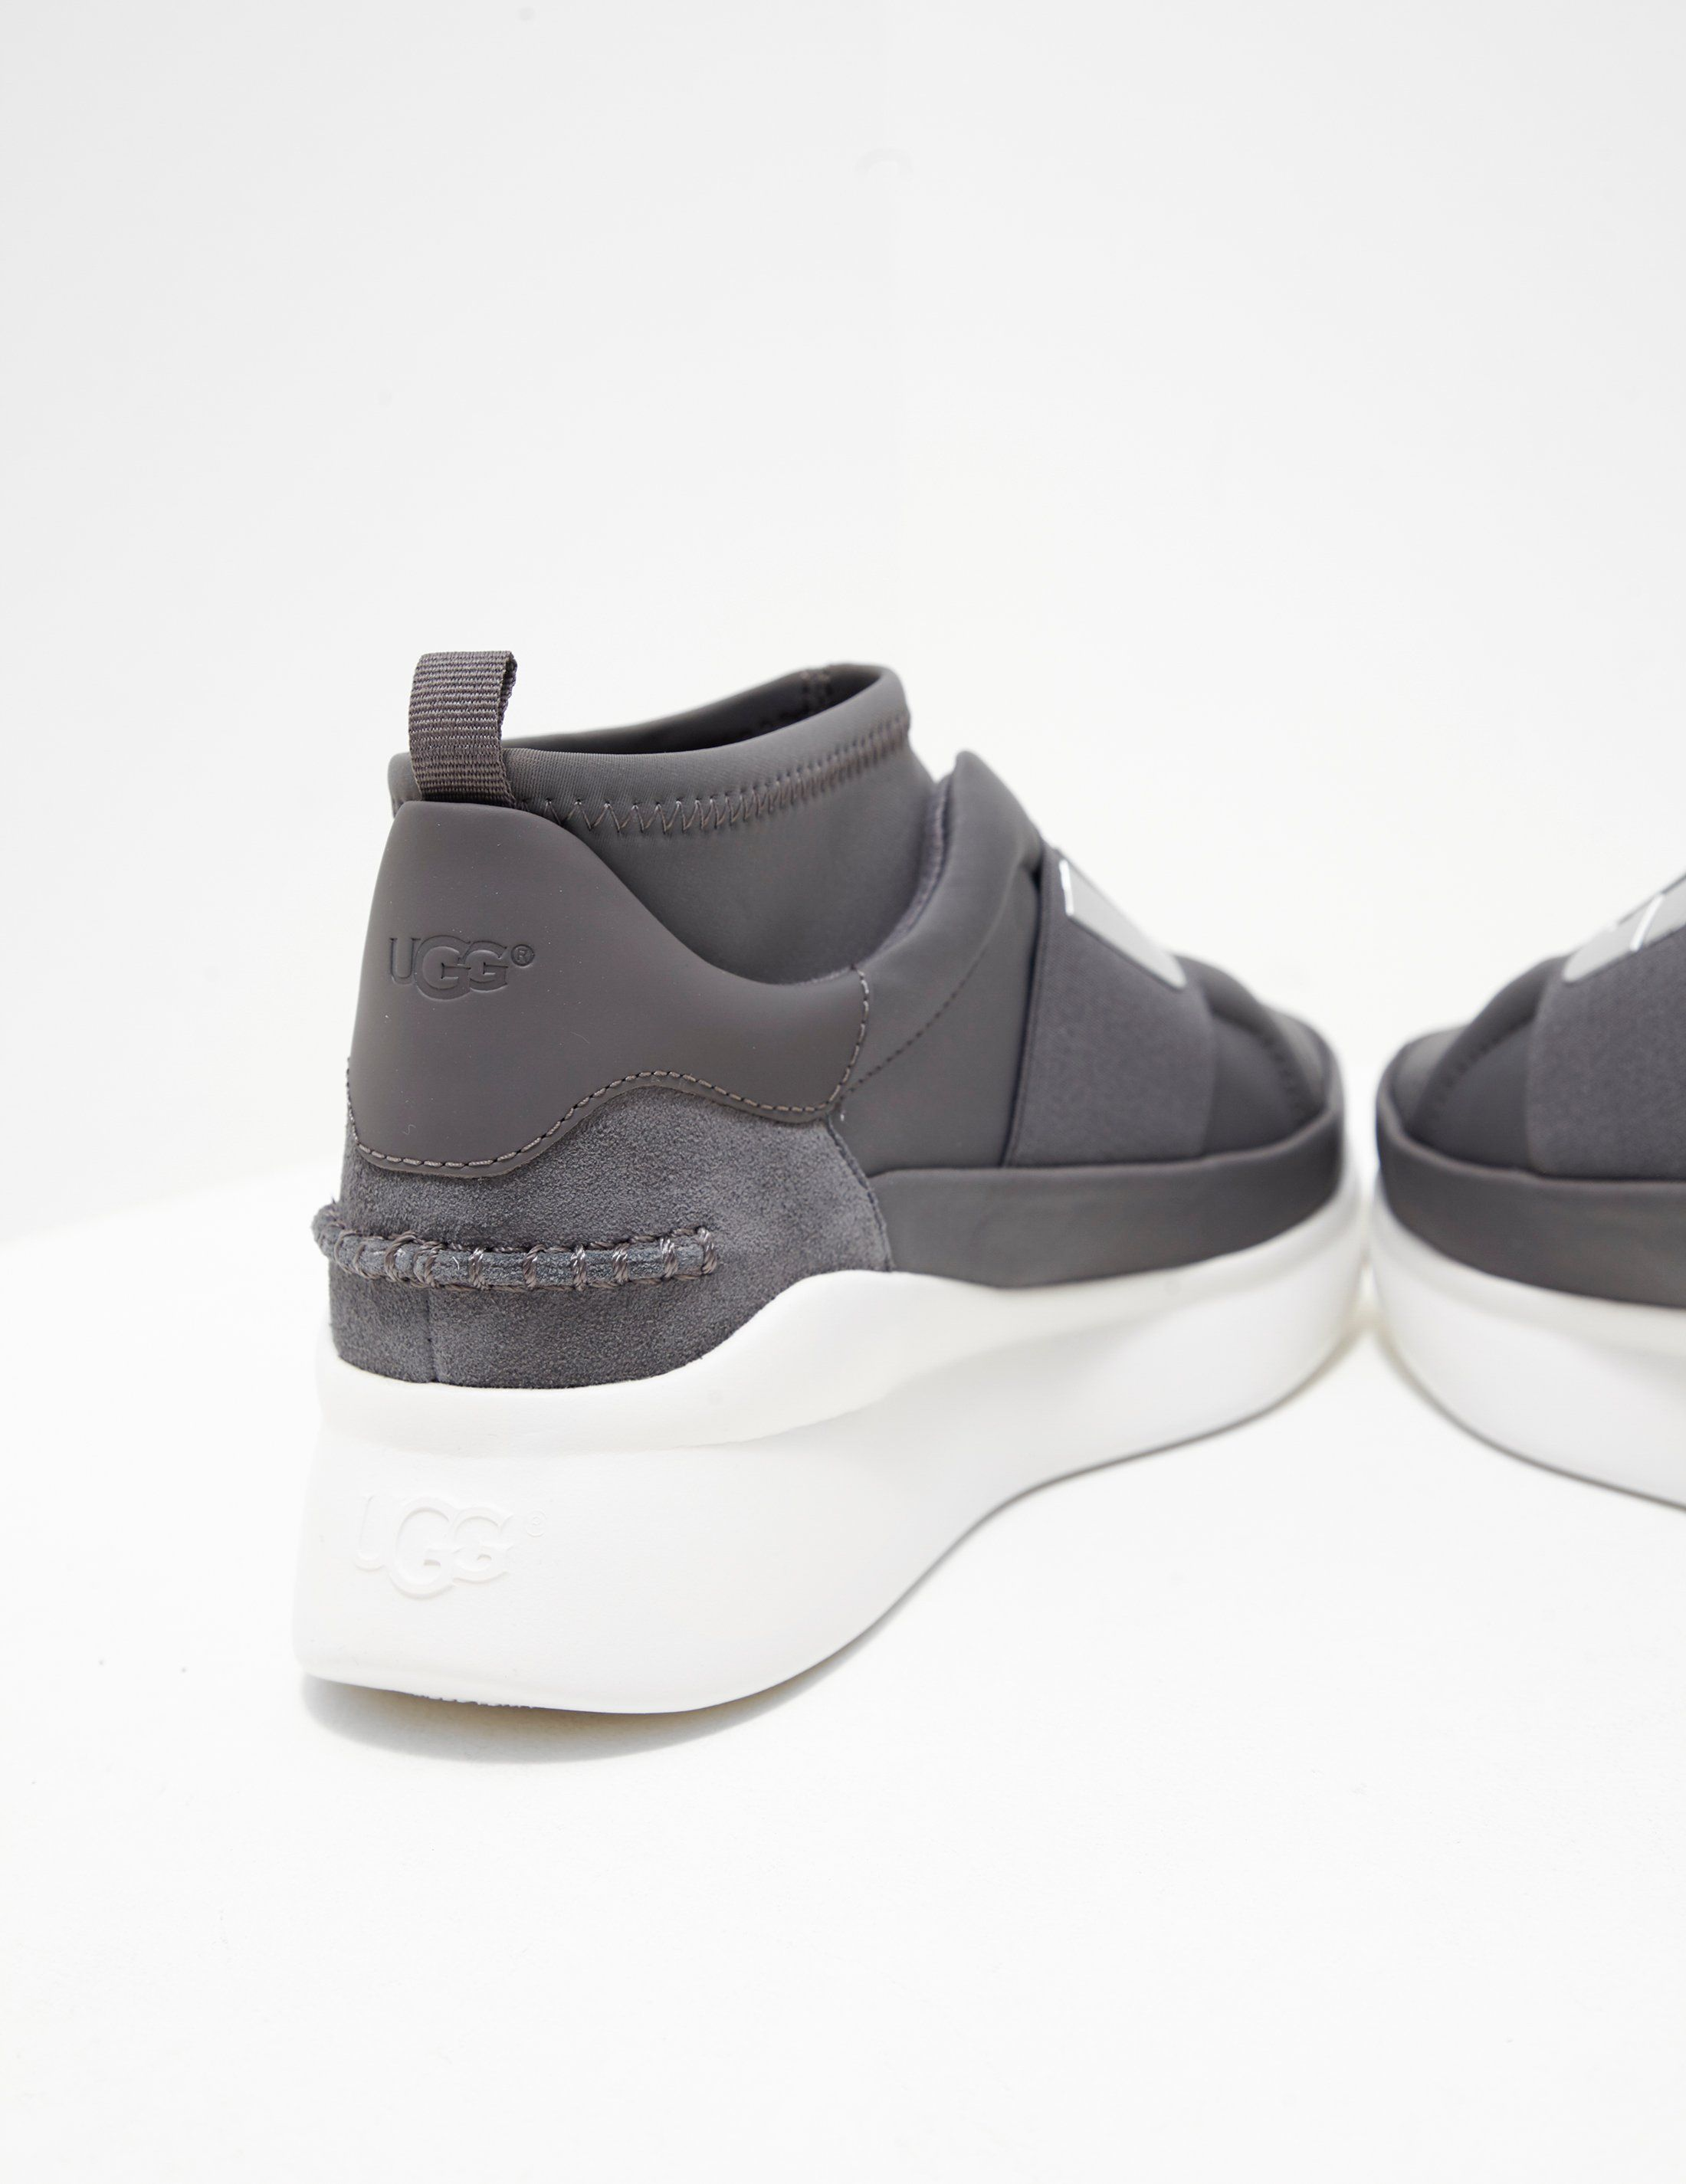 UGG Neutra Trainers - Online Exclusive